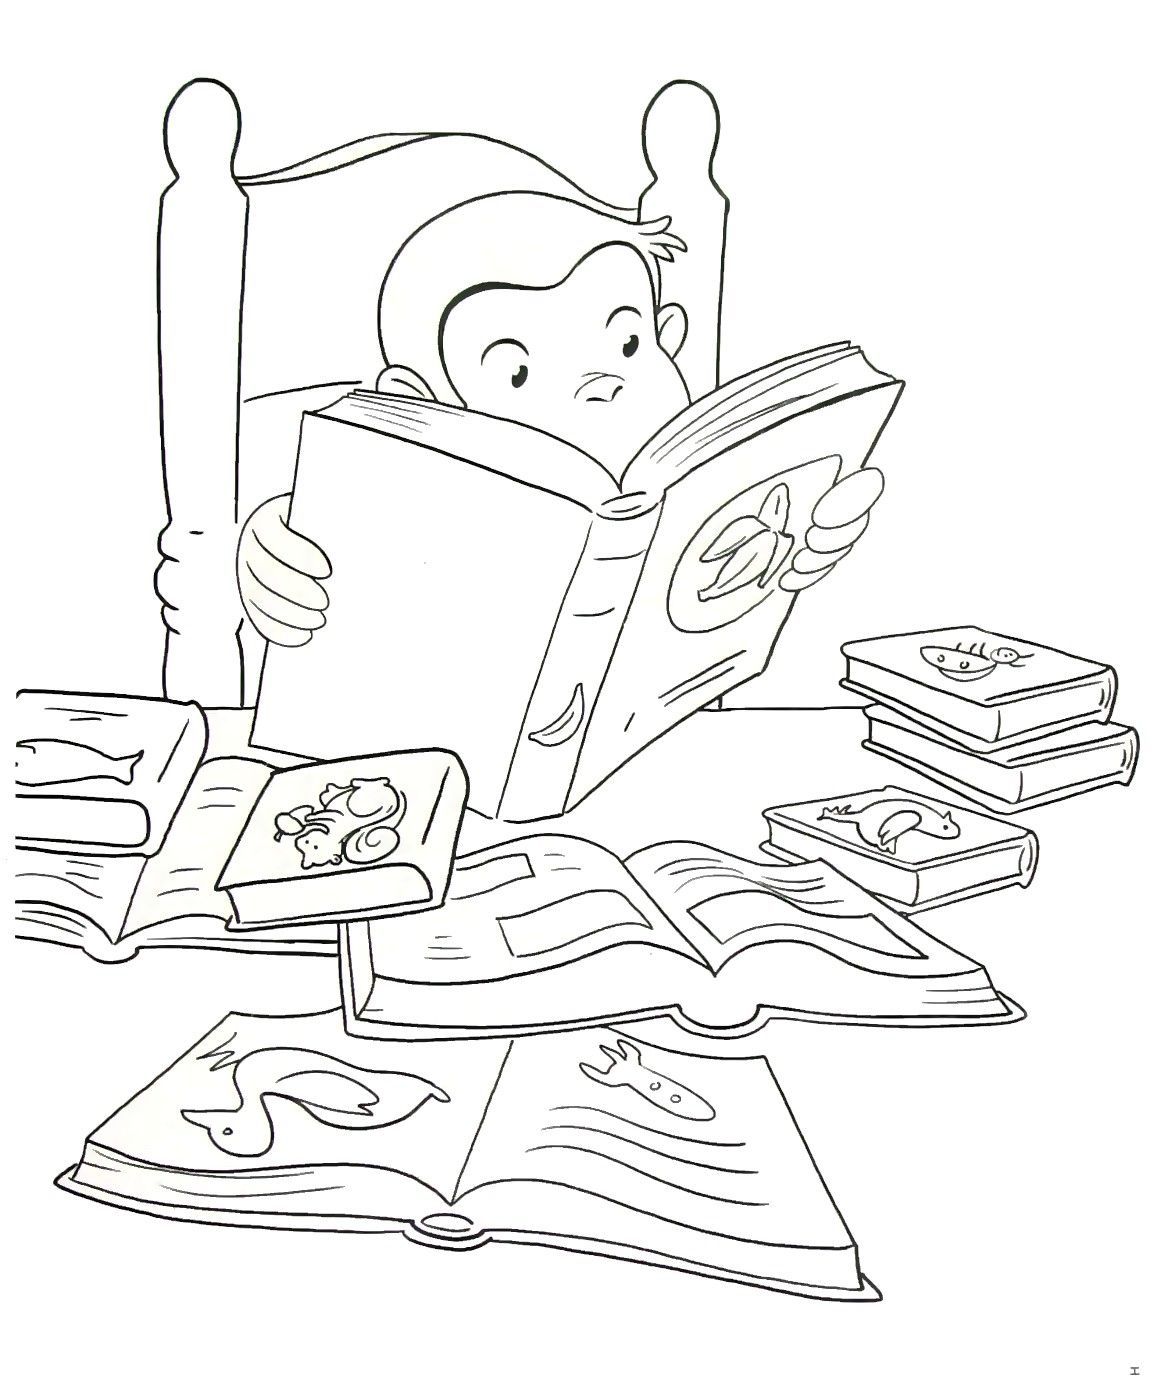 Curious George Reading A Book Coloring Book Page Printable Curious George Coloring Pages Coloring Books Curious George